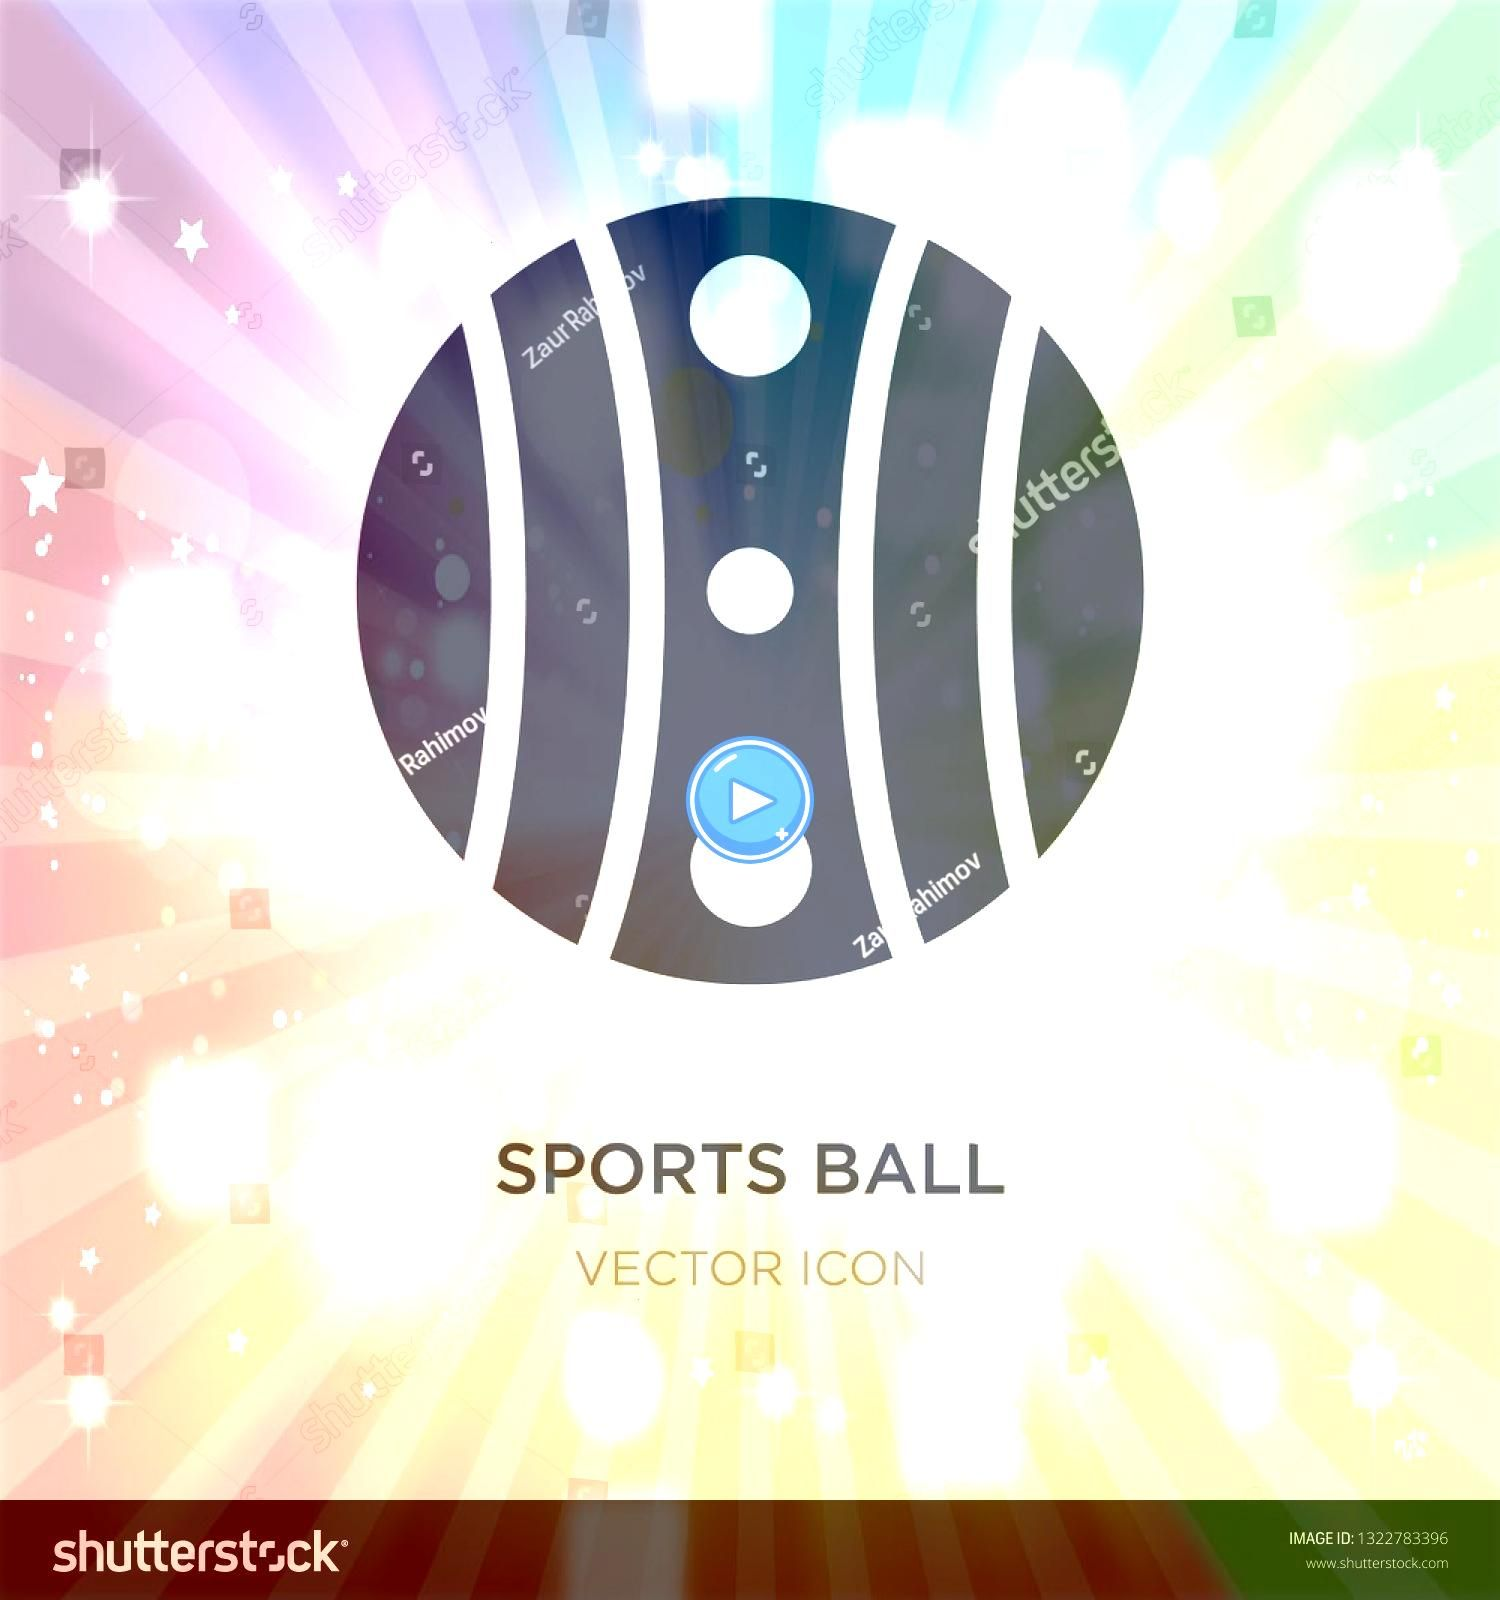 ball icon on white background Simple element illustration from Entertainment and arcade concept sports ball sign icon symbol design sports ball icon on white background S...